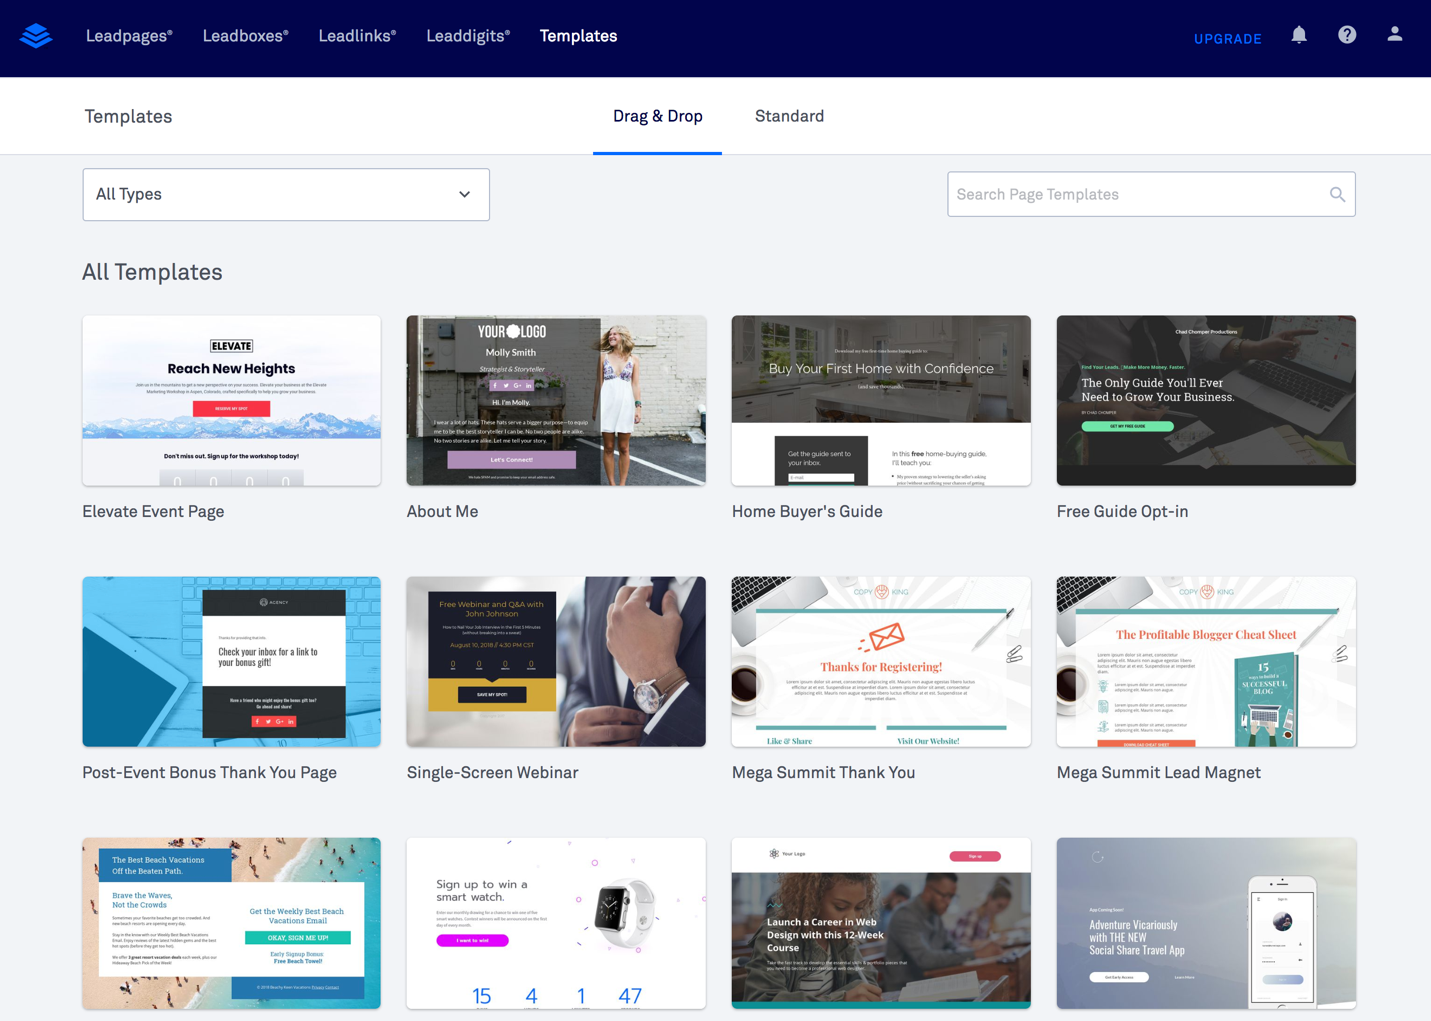 leadpages templates